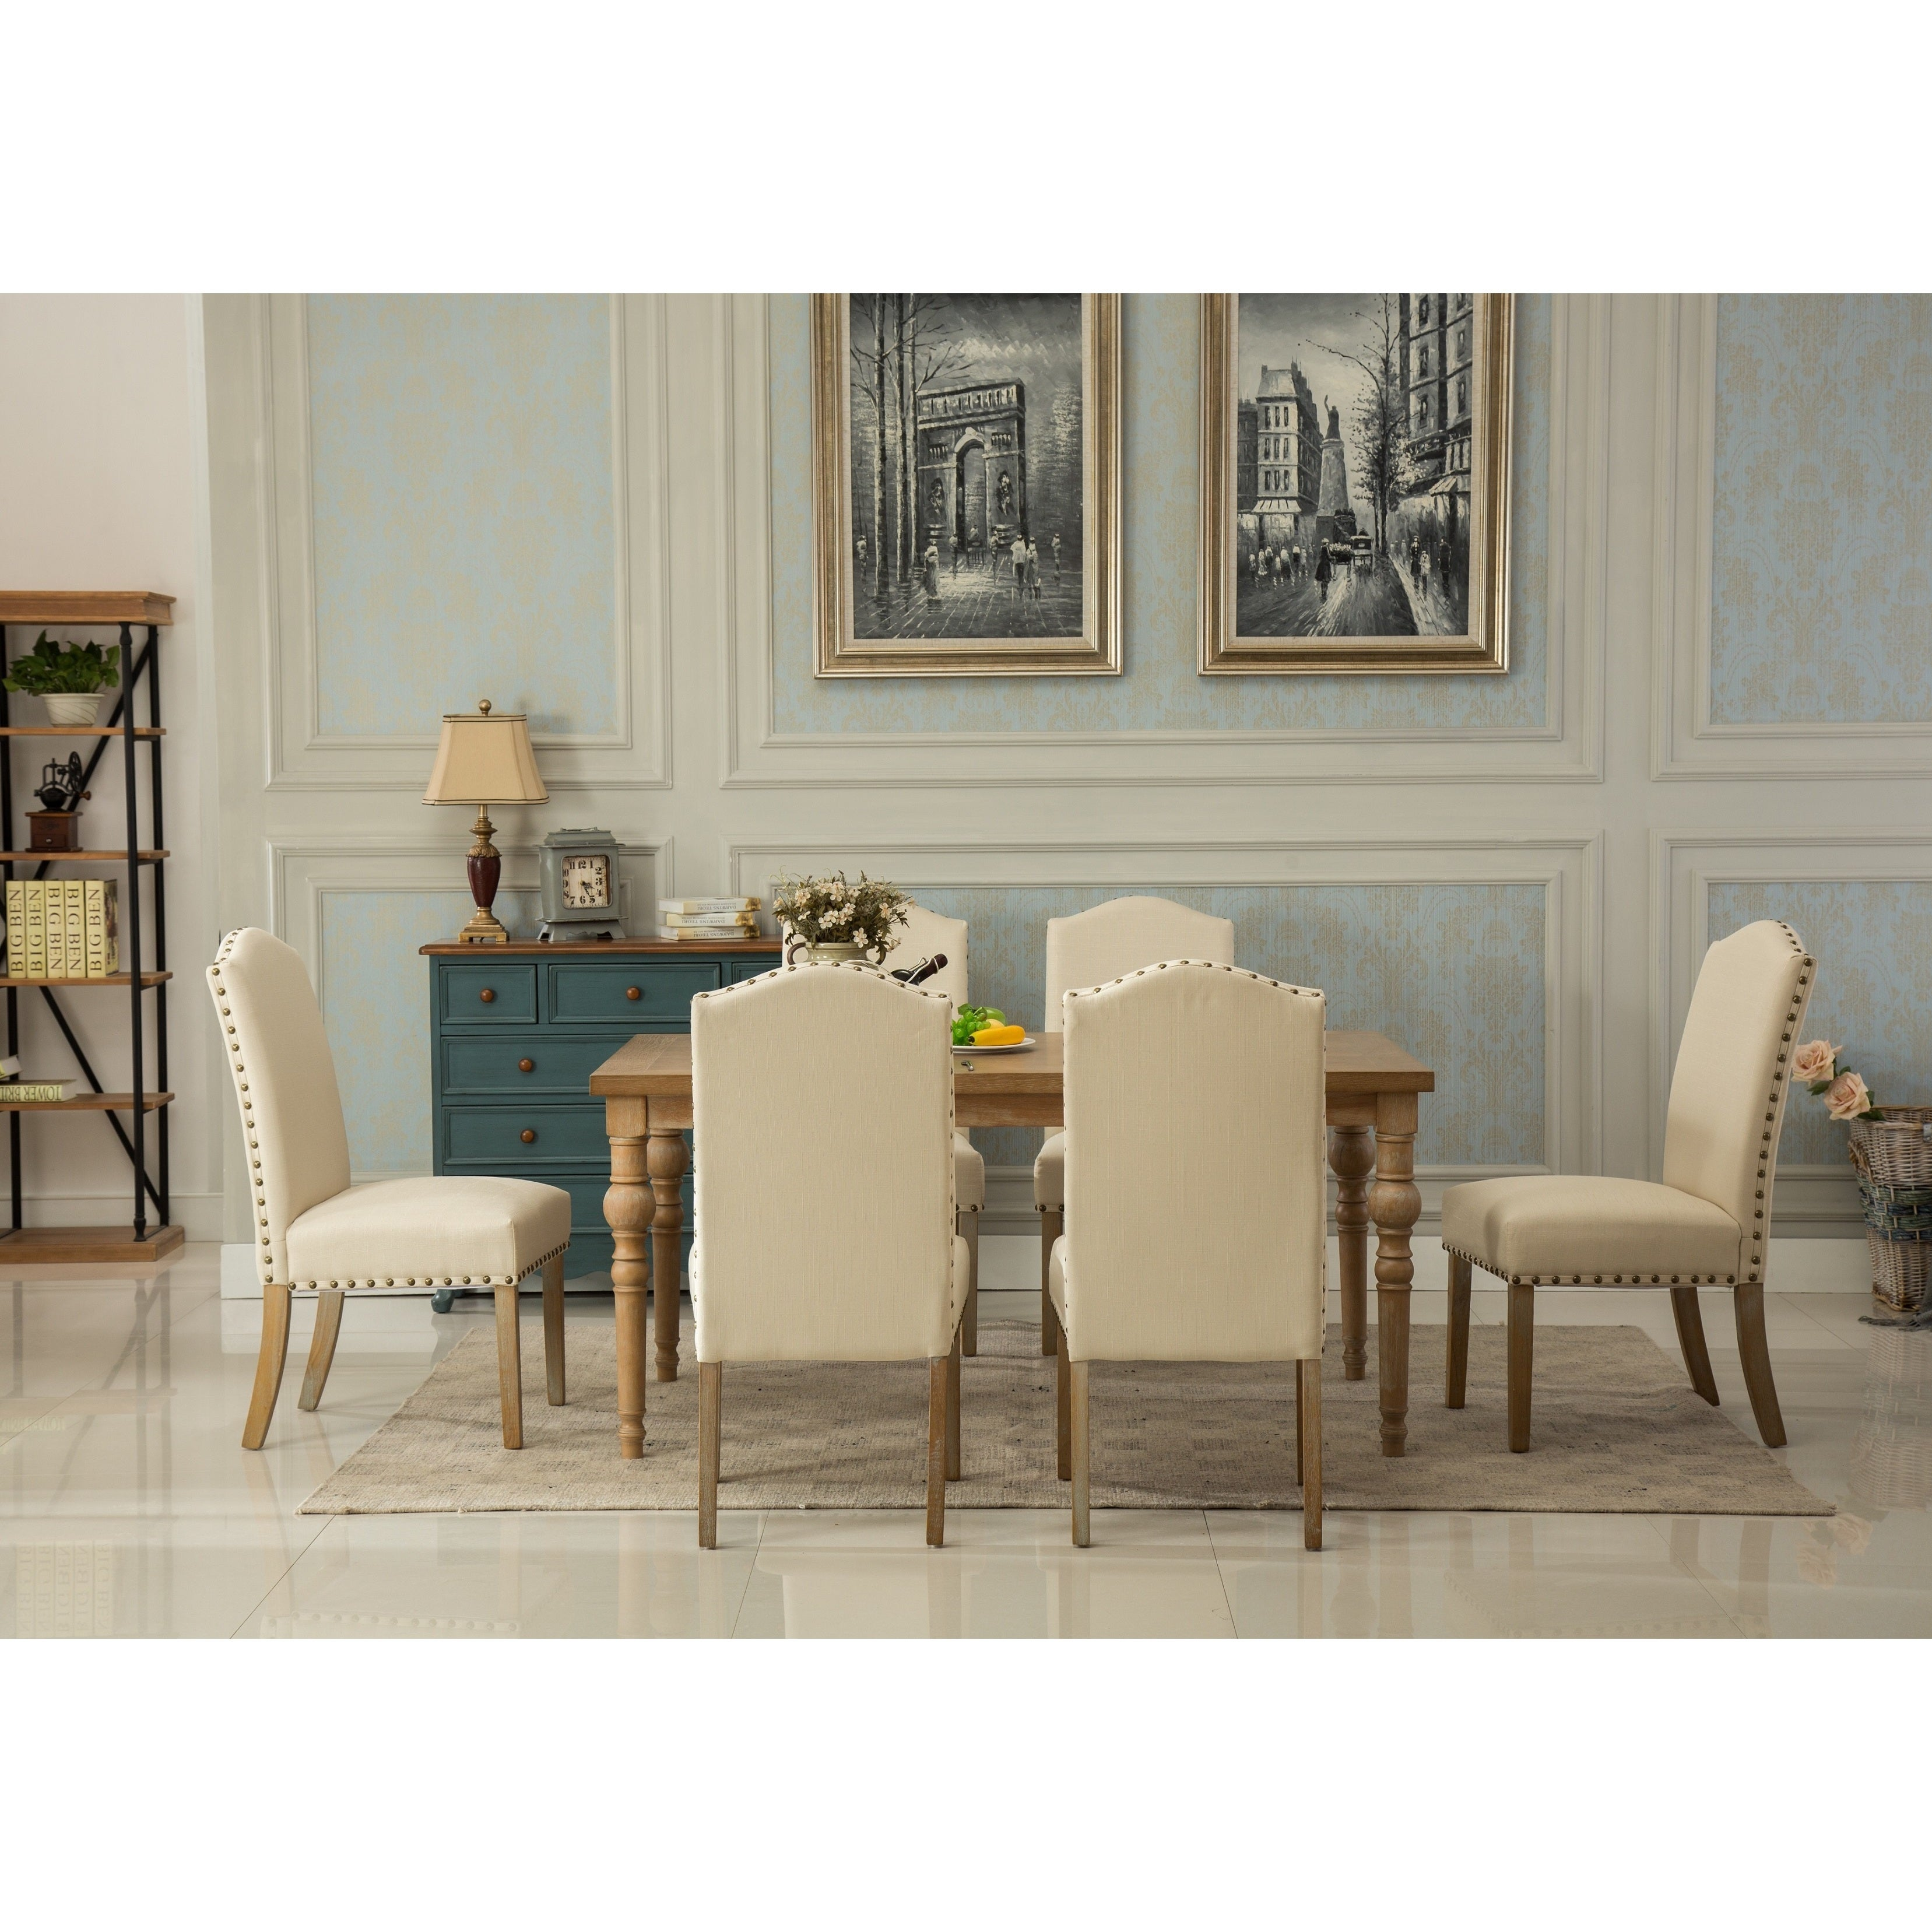 Habitanian Solid Wood Dining Table With 6 Nailhead Chairs Free Shipping Today 14602657